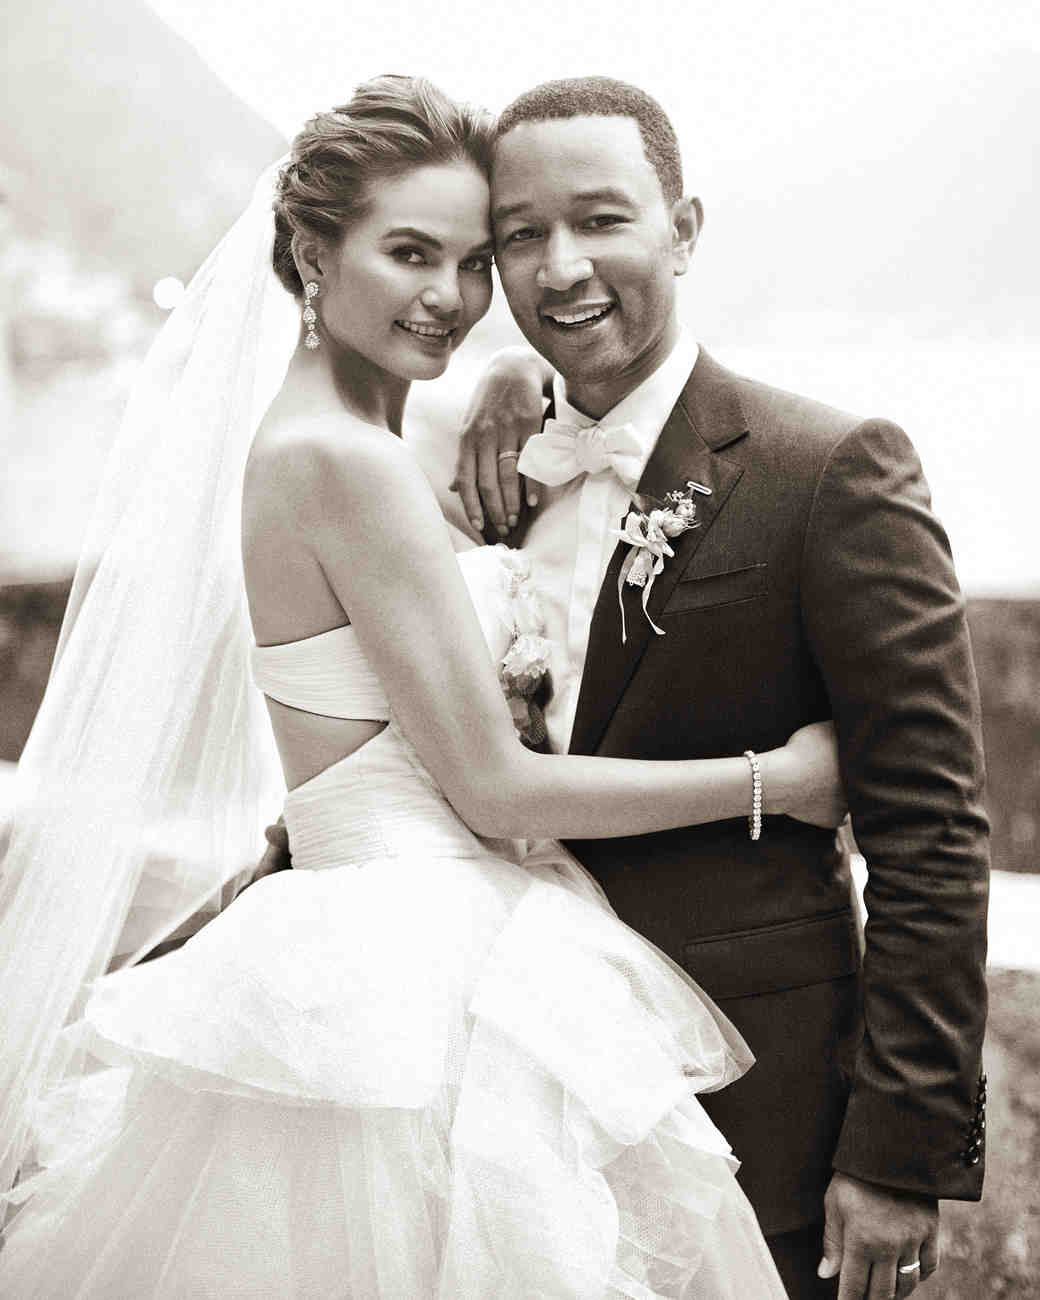 bride-groom-johnlegend-delesie0128-bw-mwds110843.jpg